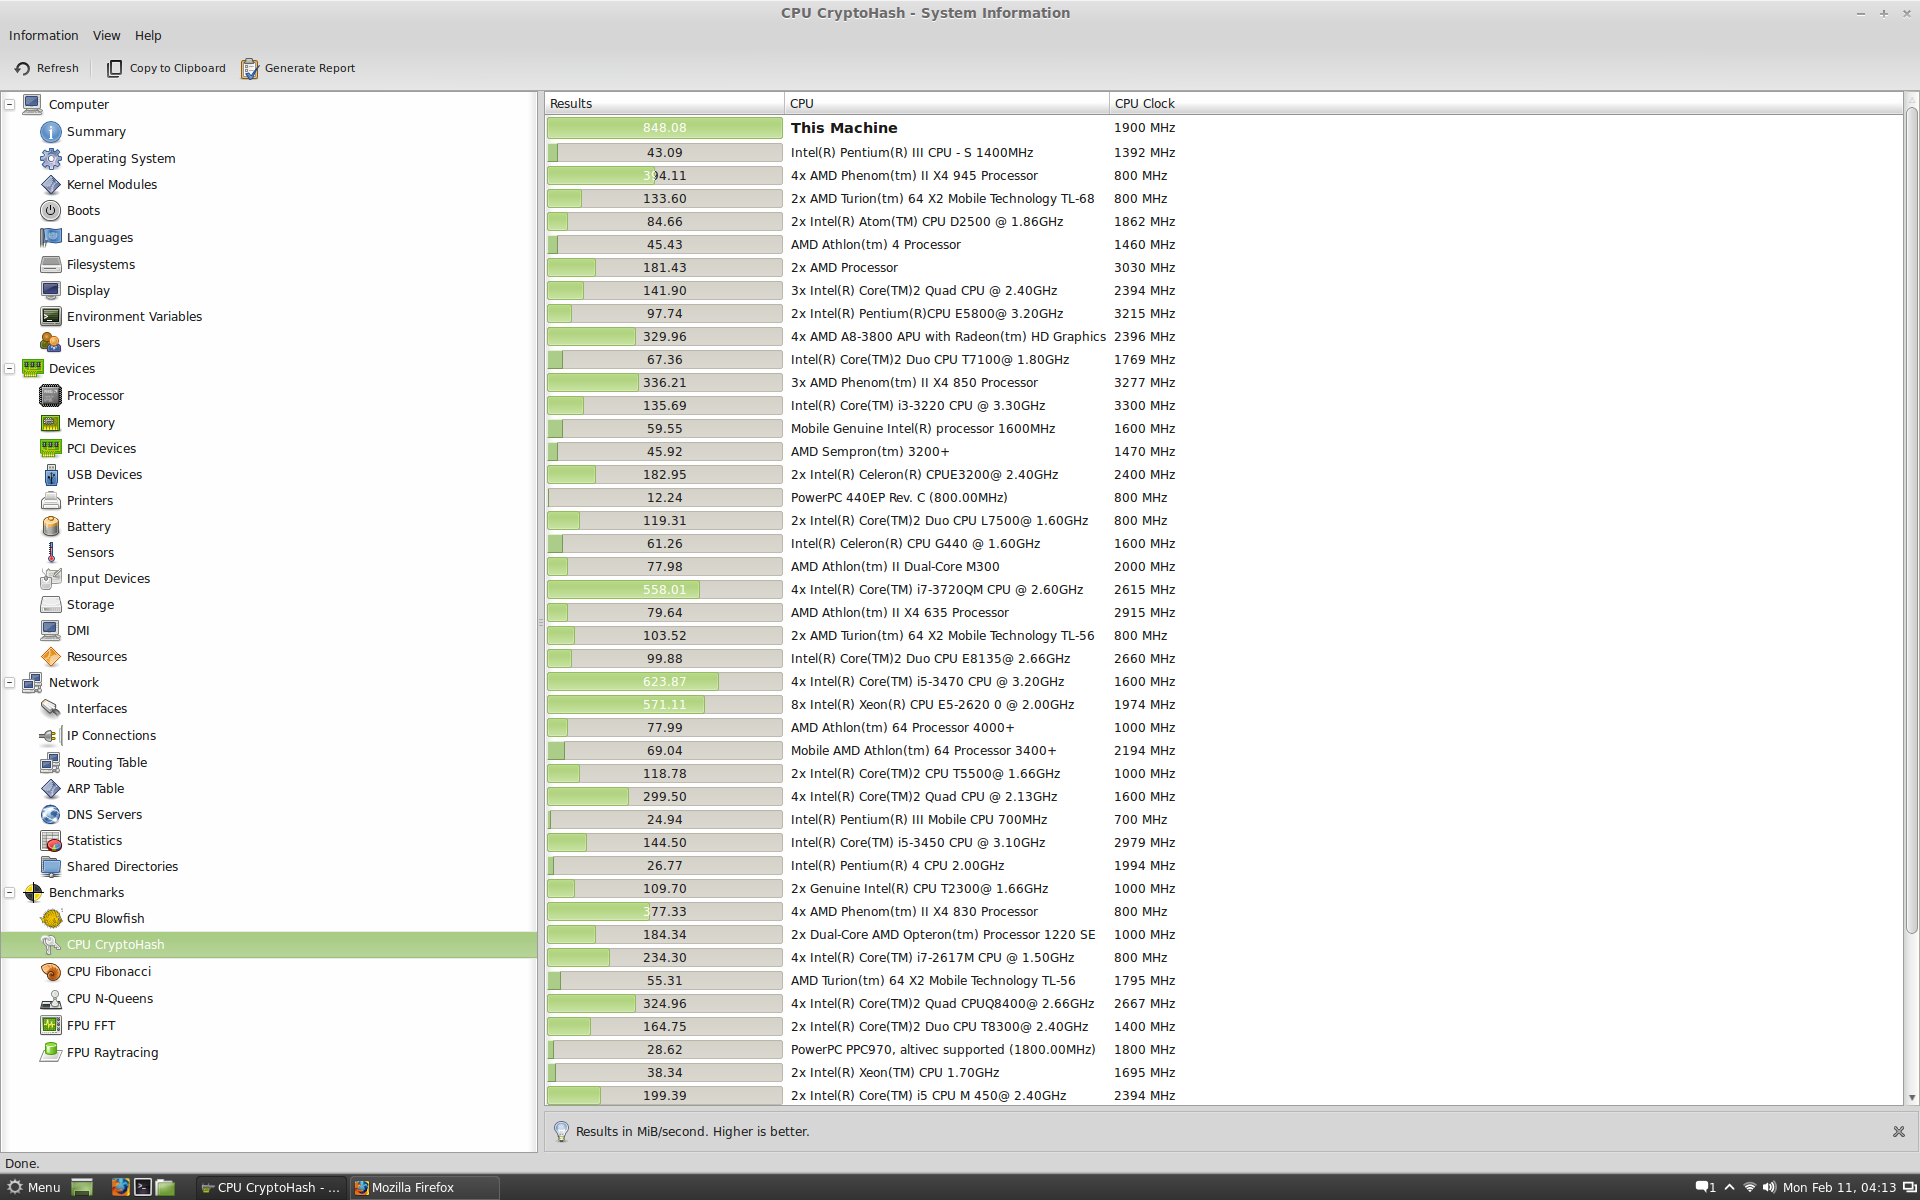 CPU CryptoHash (4.6GHZ, offset Vcore) , Linux Mint 14